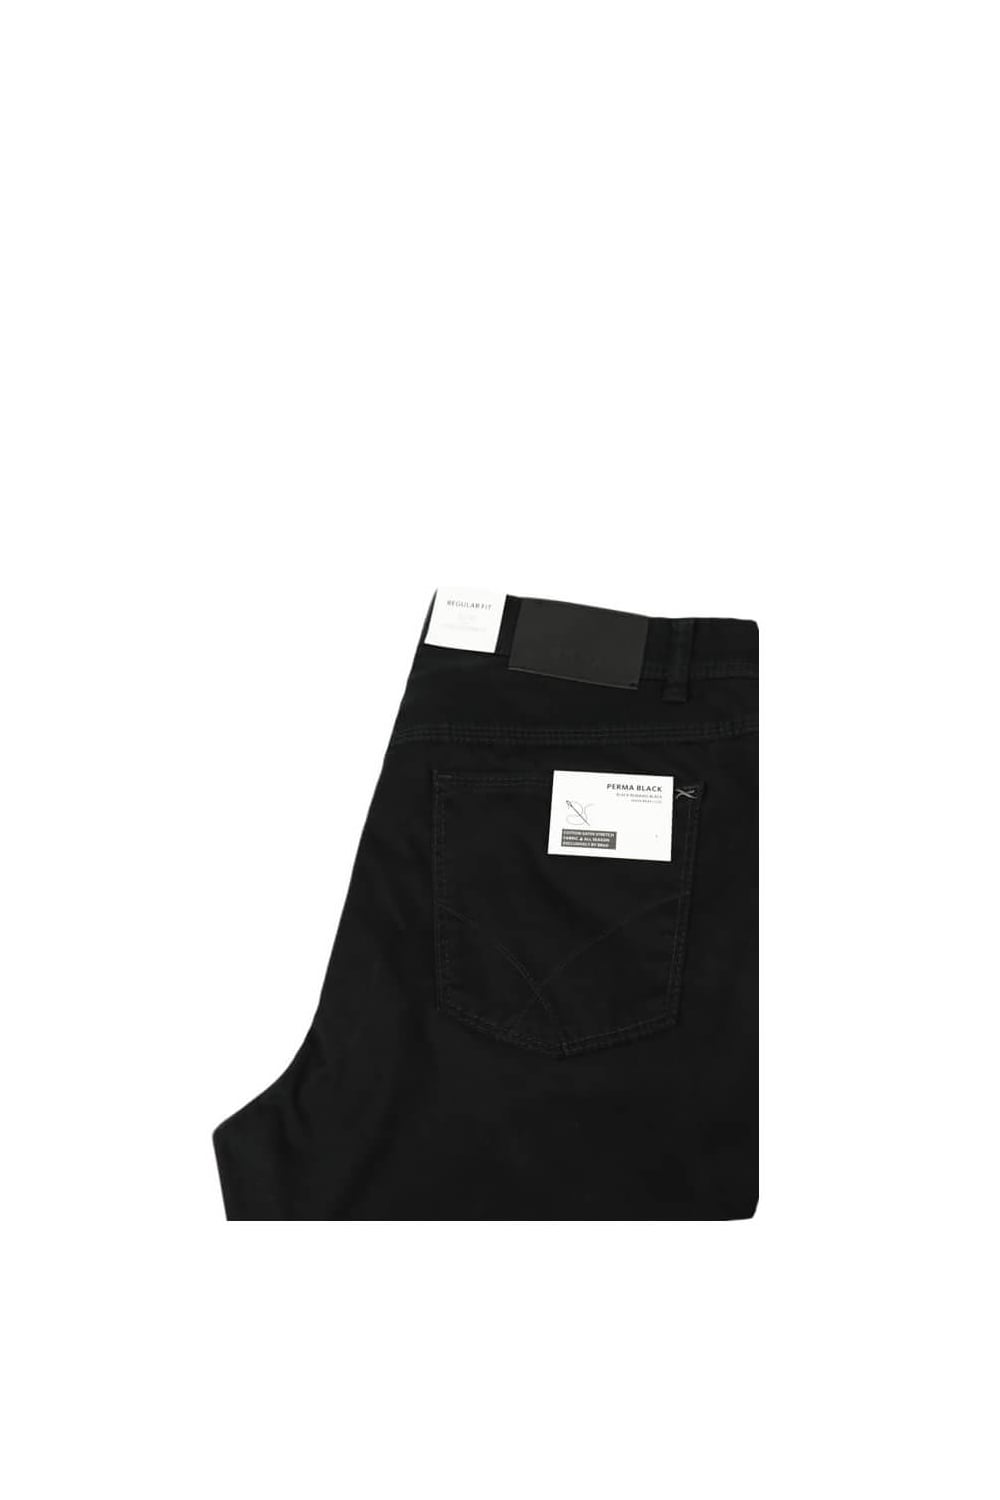 good service coupon codes amazing selection Brax Cooper Regular Fit Jeans Size: 34W30L